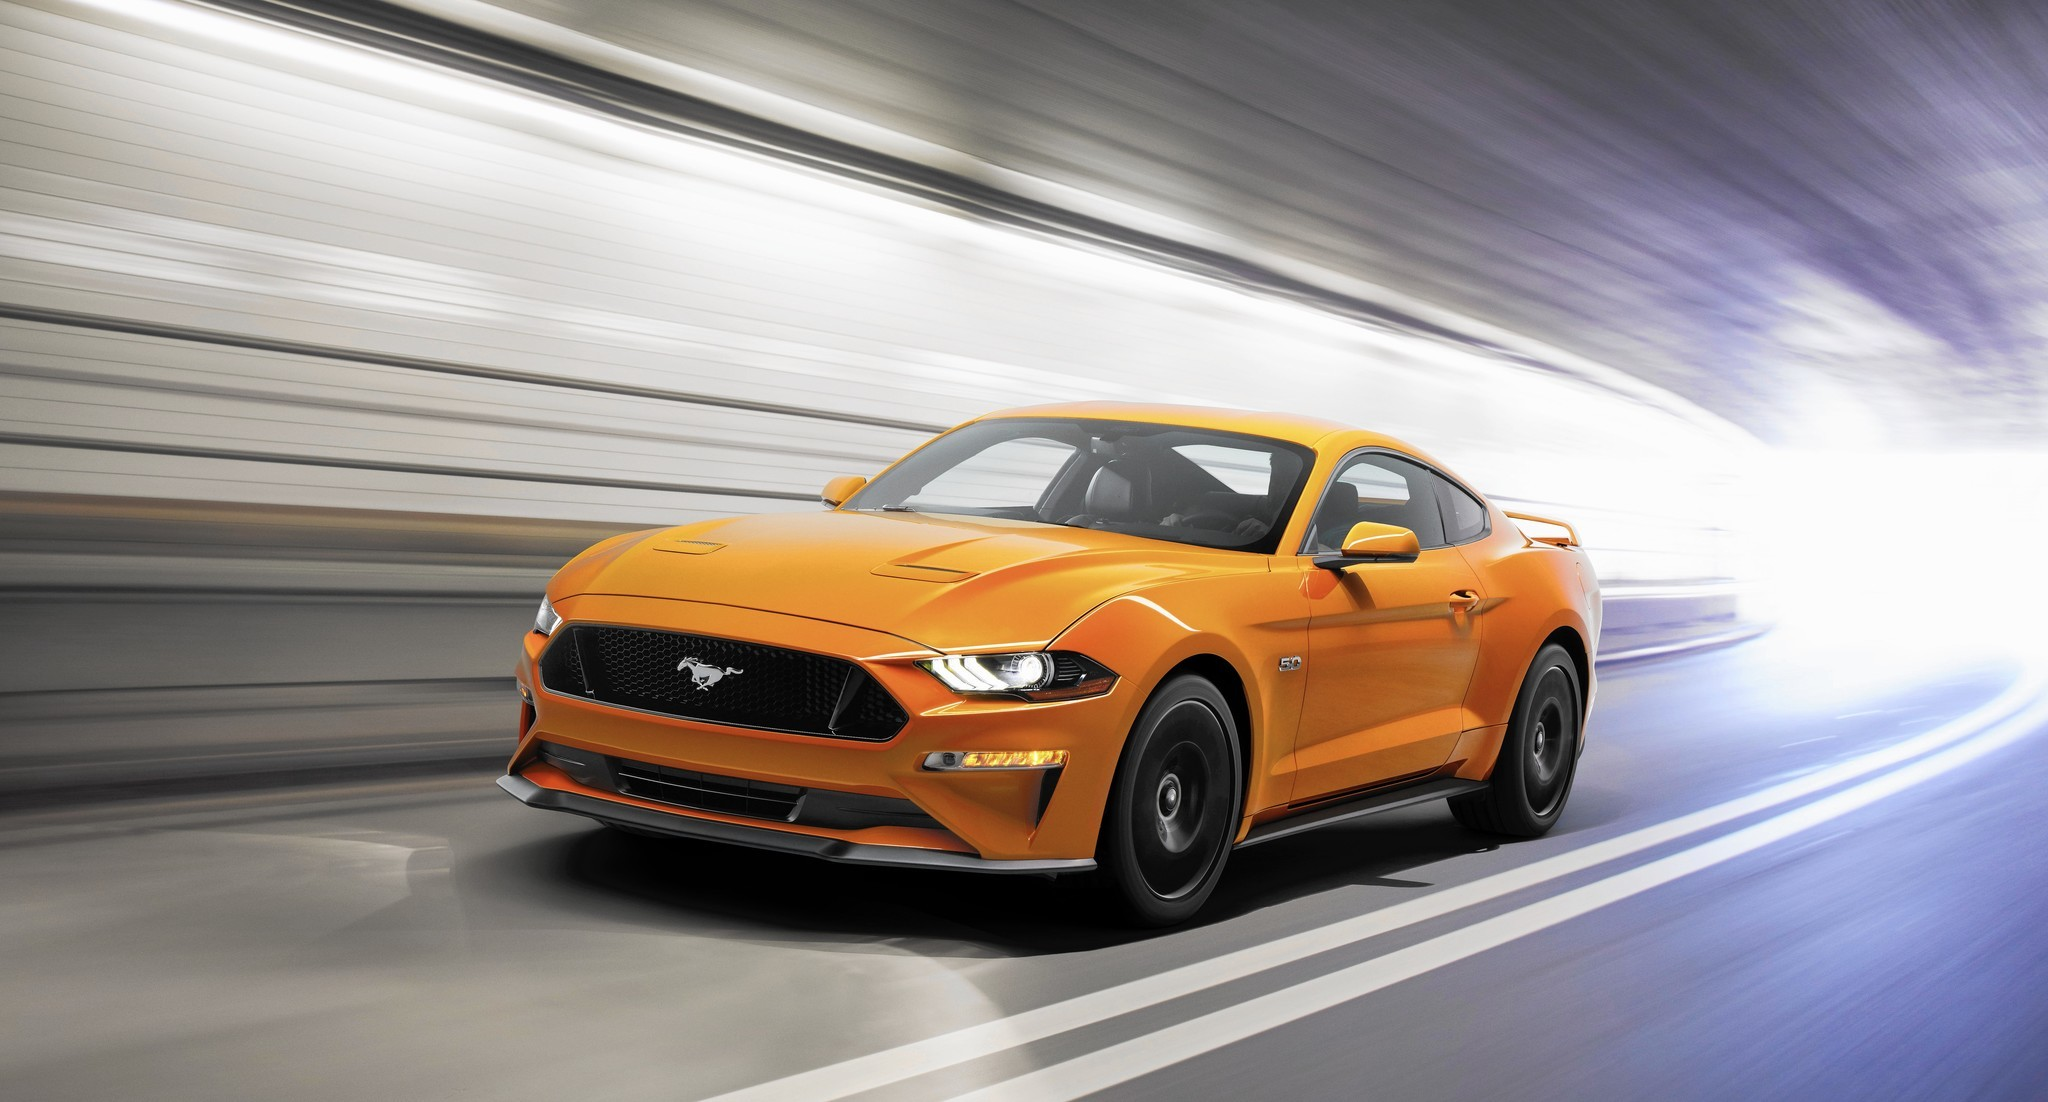 Refreshed 2018 Ford Mustang channels high-performance GT350